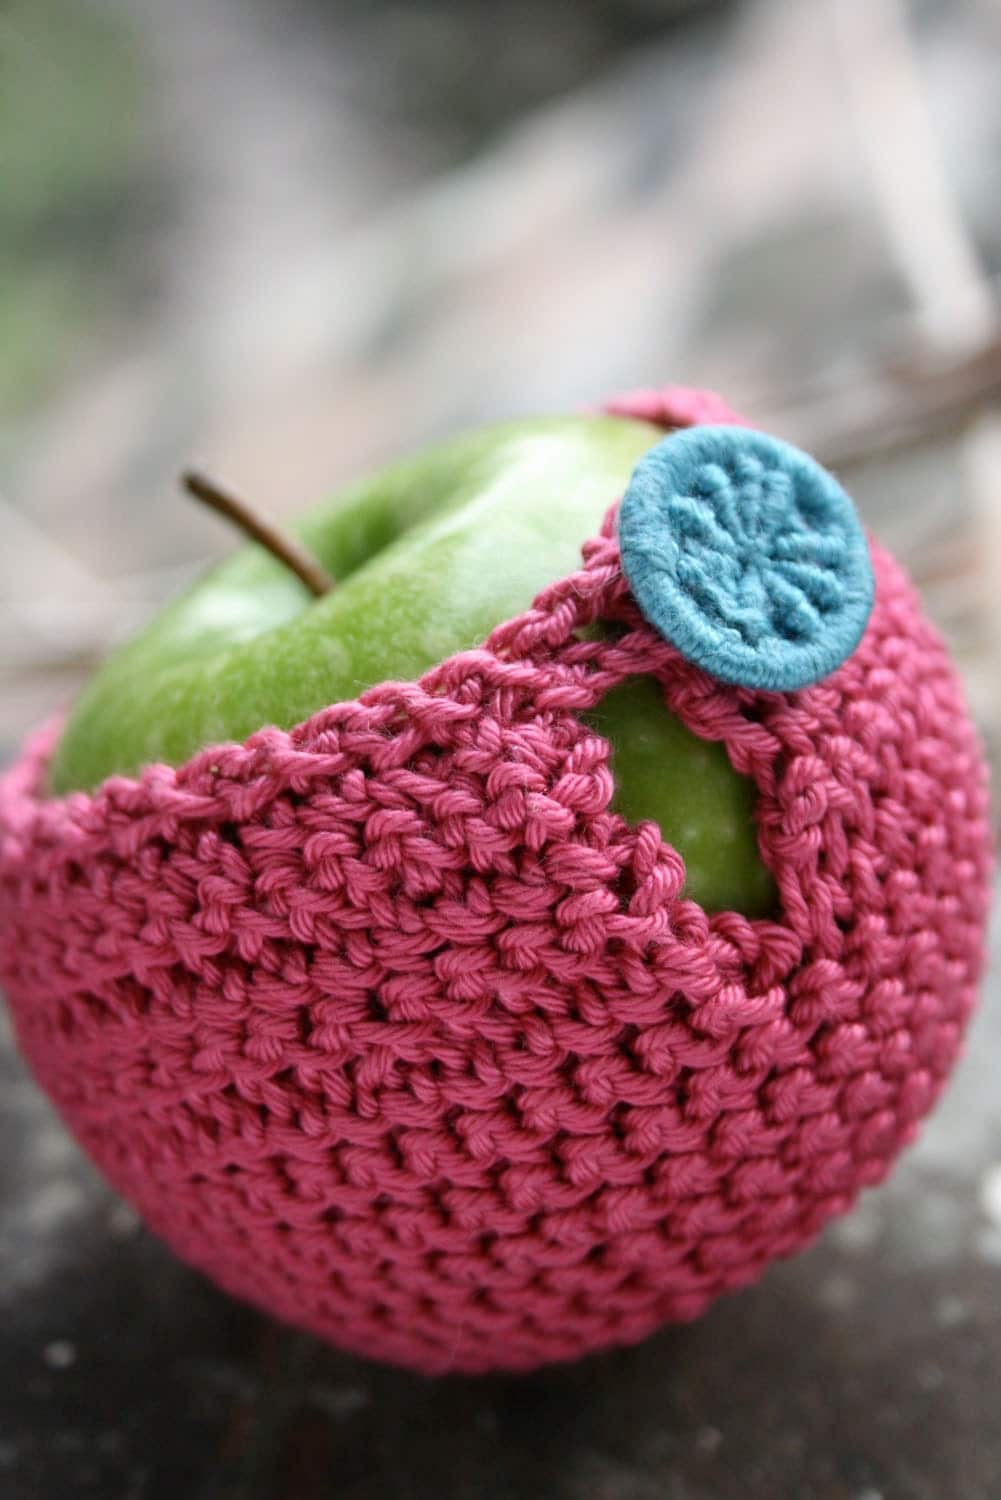 Apple cozy crocheted in pure cotton yarn with a Dorset button